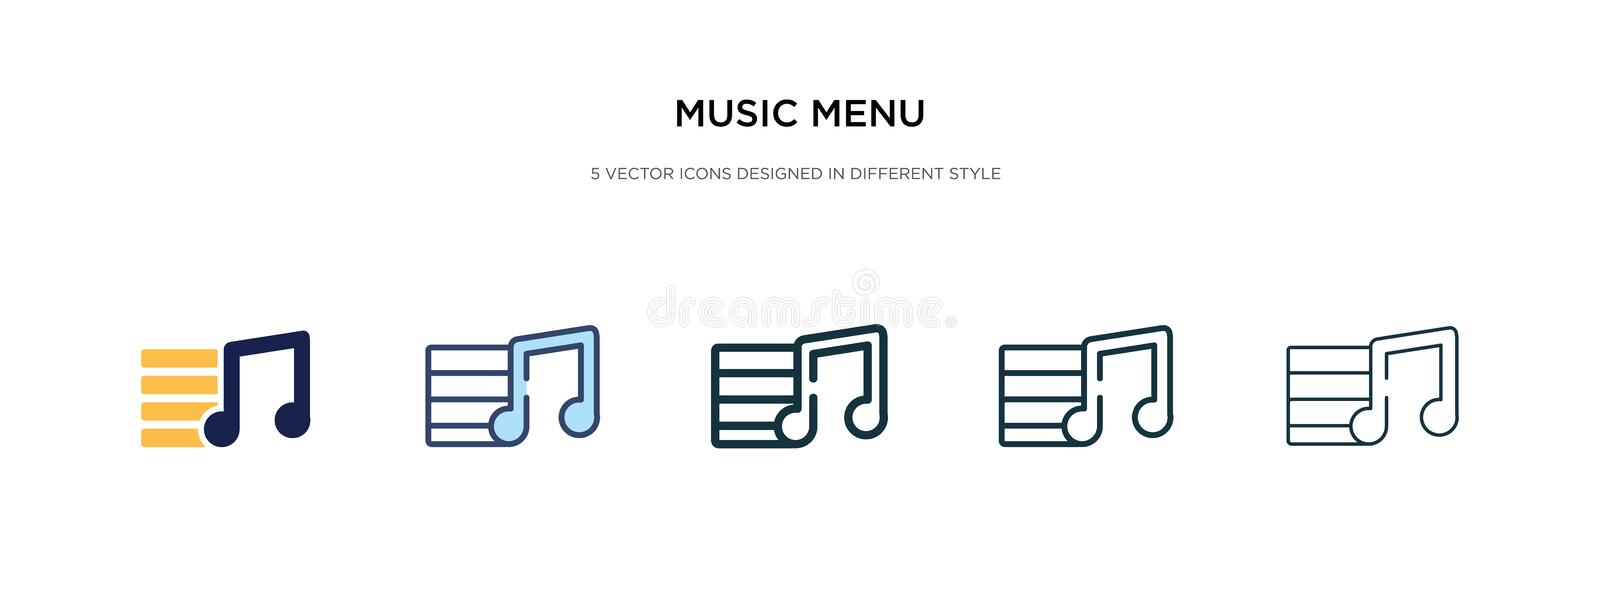 Music menu icon in different style vector illustration. two colored and black music menu vector icons designed in filled, outline royalty free illustration